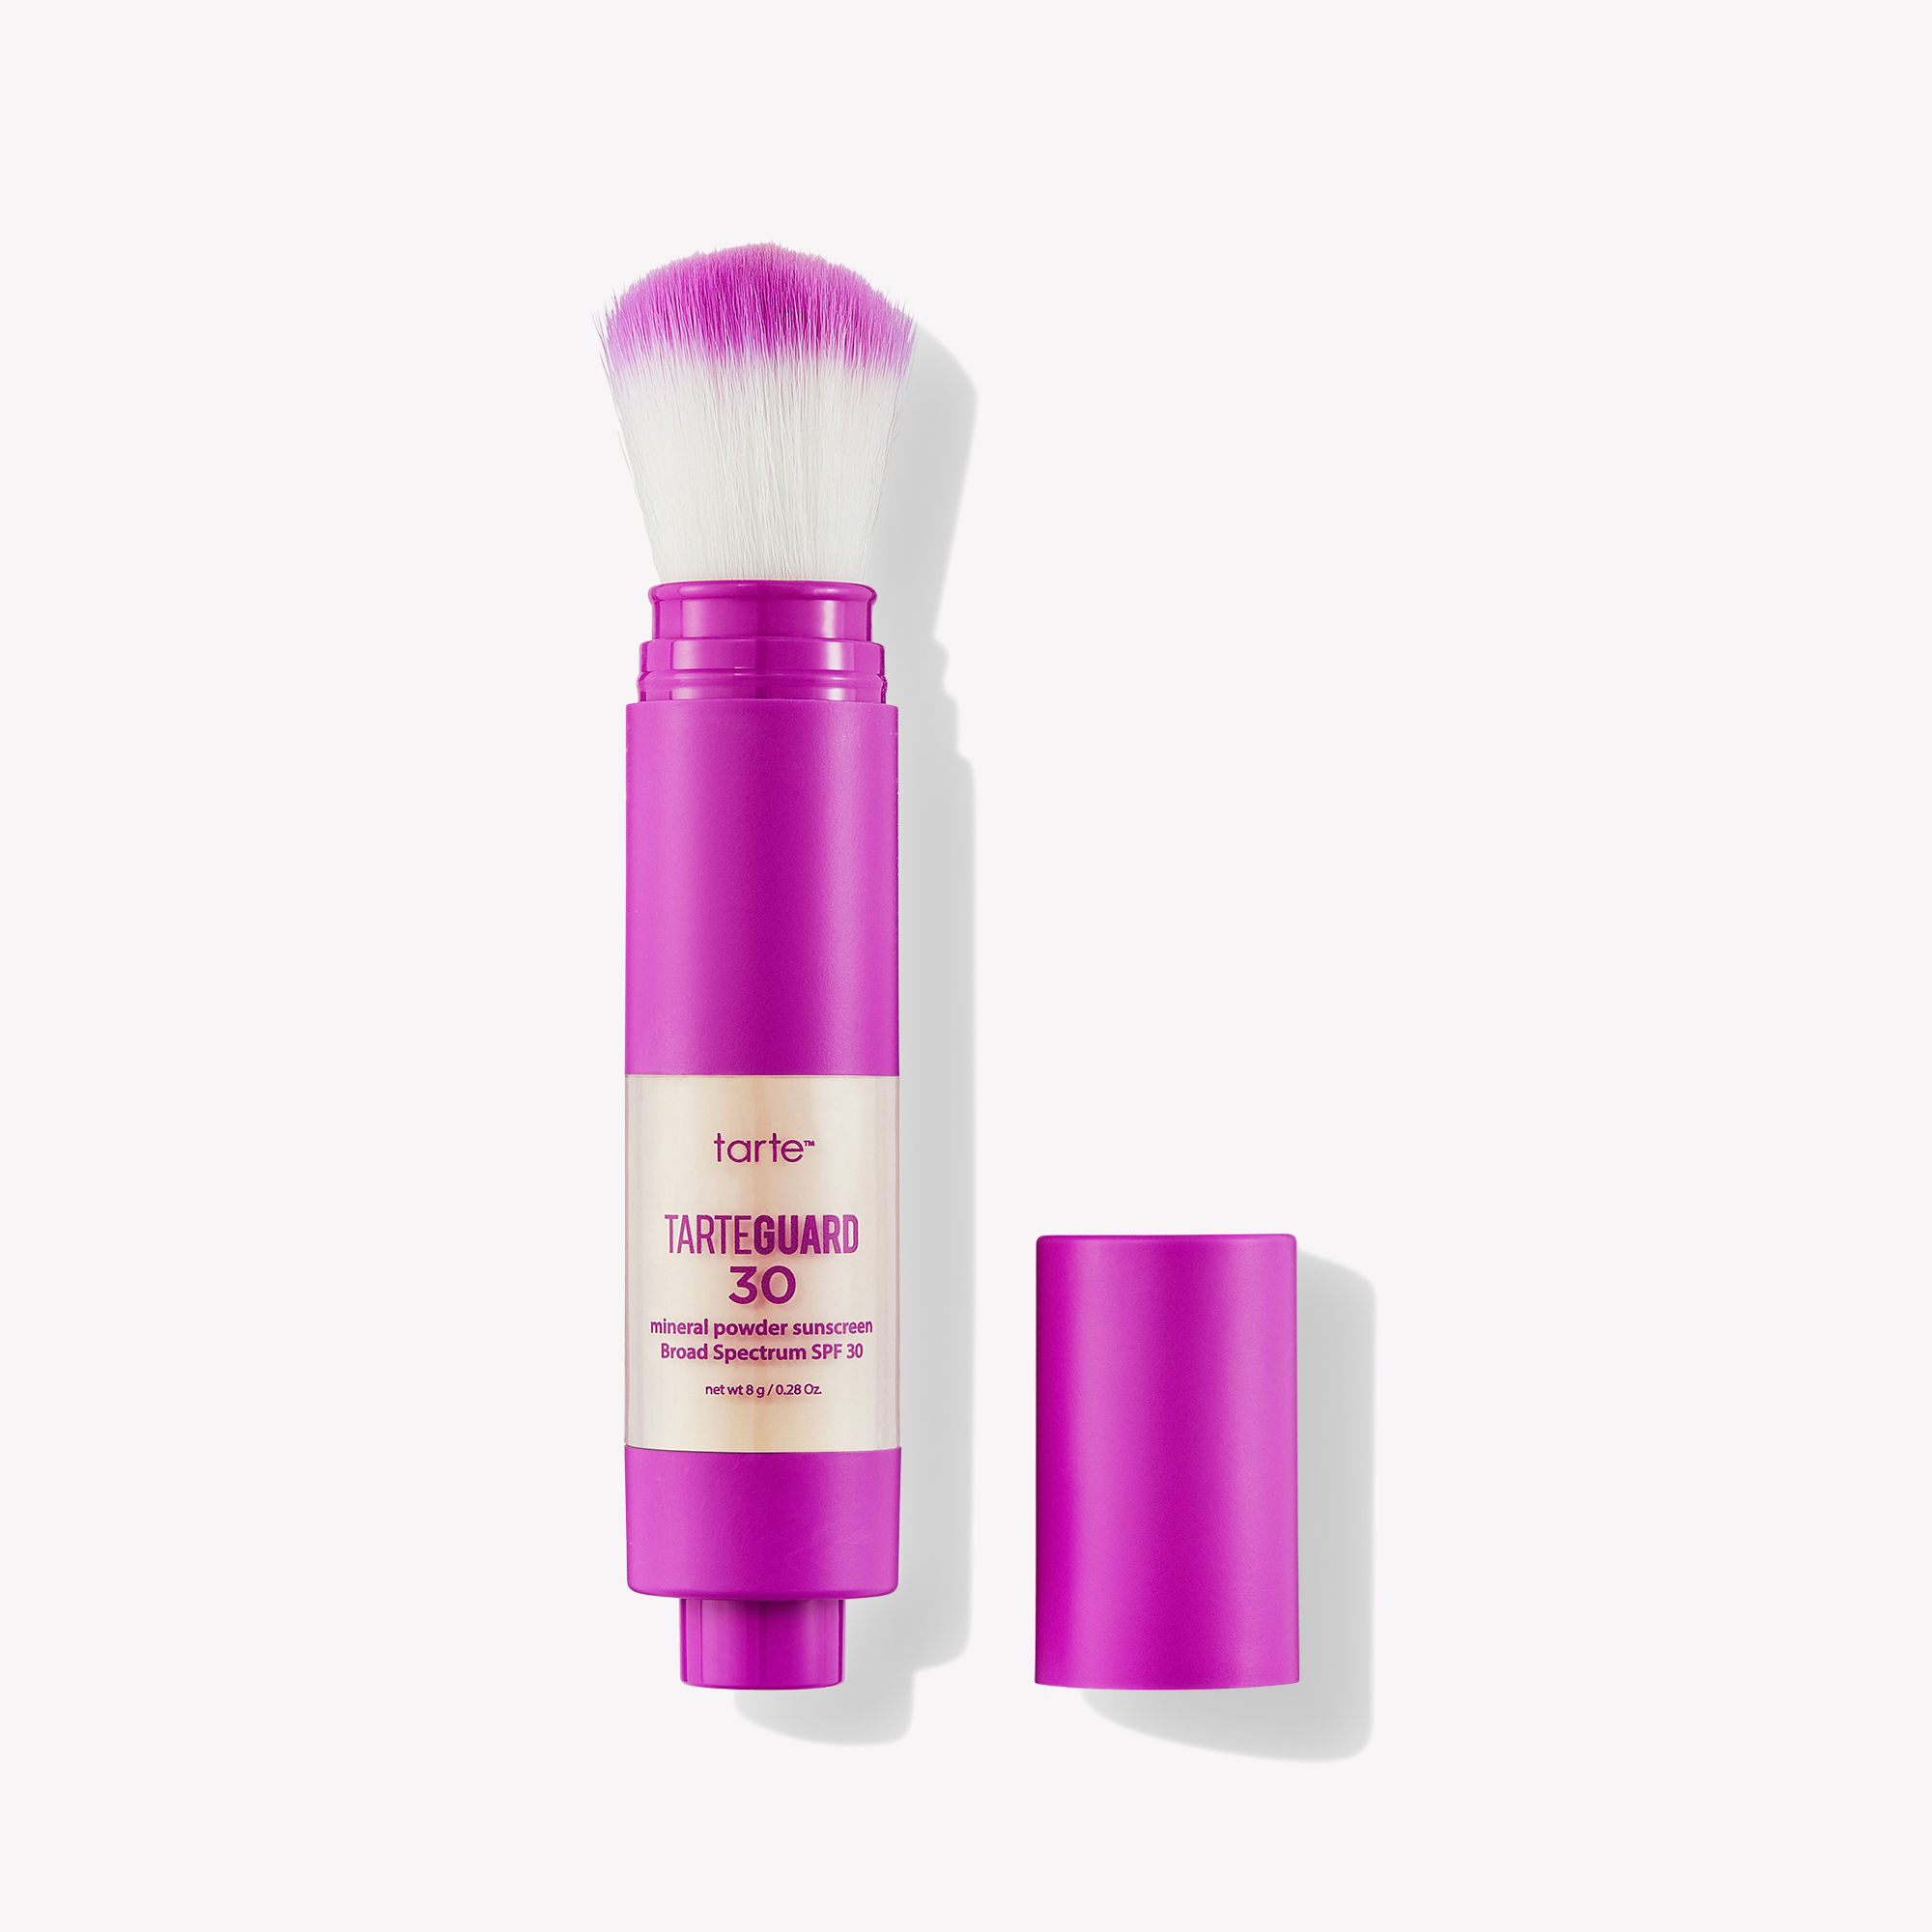 tarte Tarteguard Mineral Powder Sunscreen Broad Spectrum SPF 30